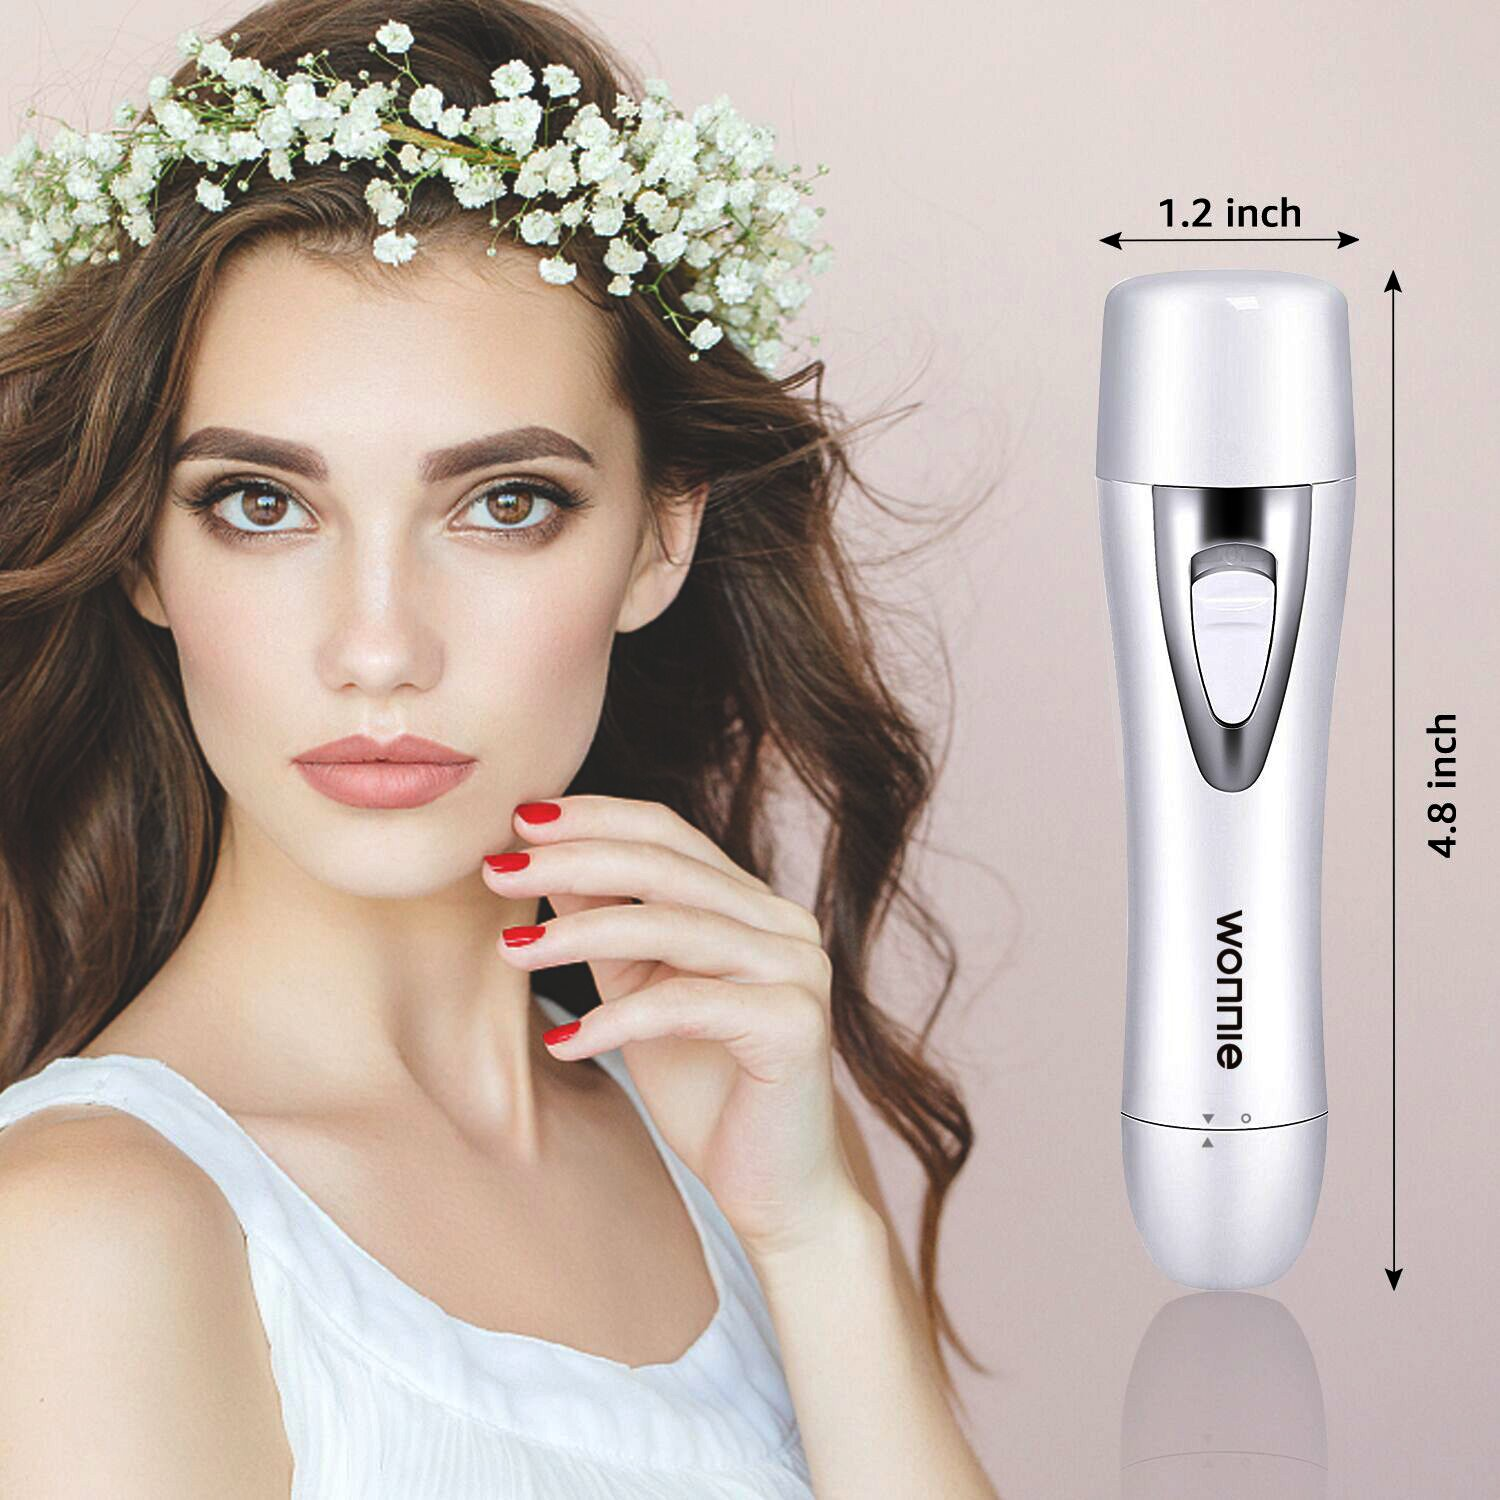 Lady Shaver 4 in 1 Facial Hair Removal for Women Painless Flawless Epilator Waterproof Electric Ladies Razor USB Rechargable Eyebrow Trimmer/Face Trimmer/Nose Hair Trimmer/Bikini Hair Trimmer White